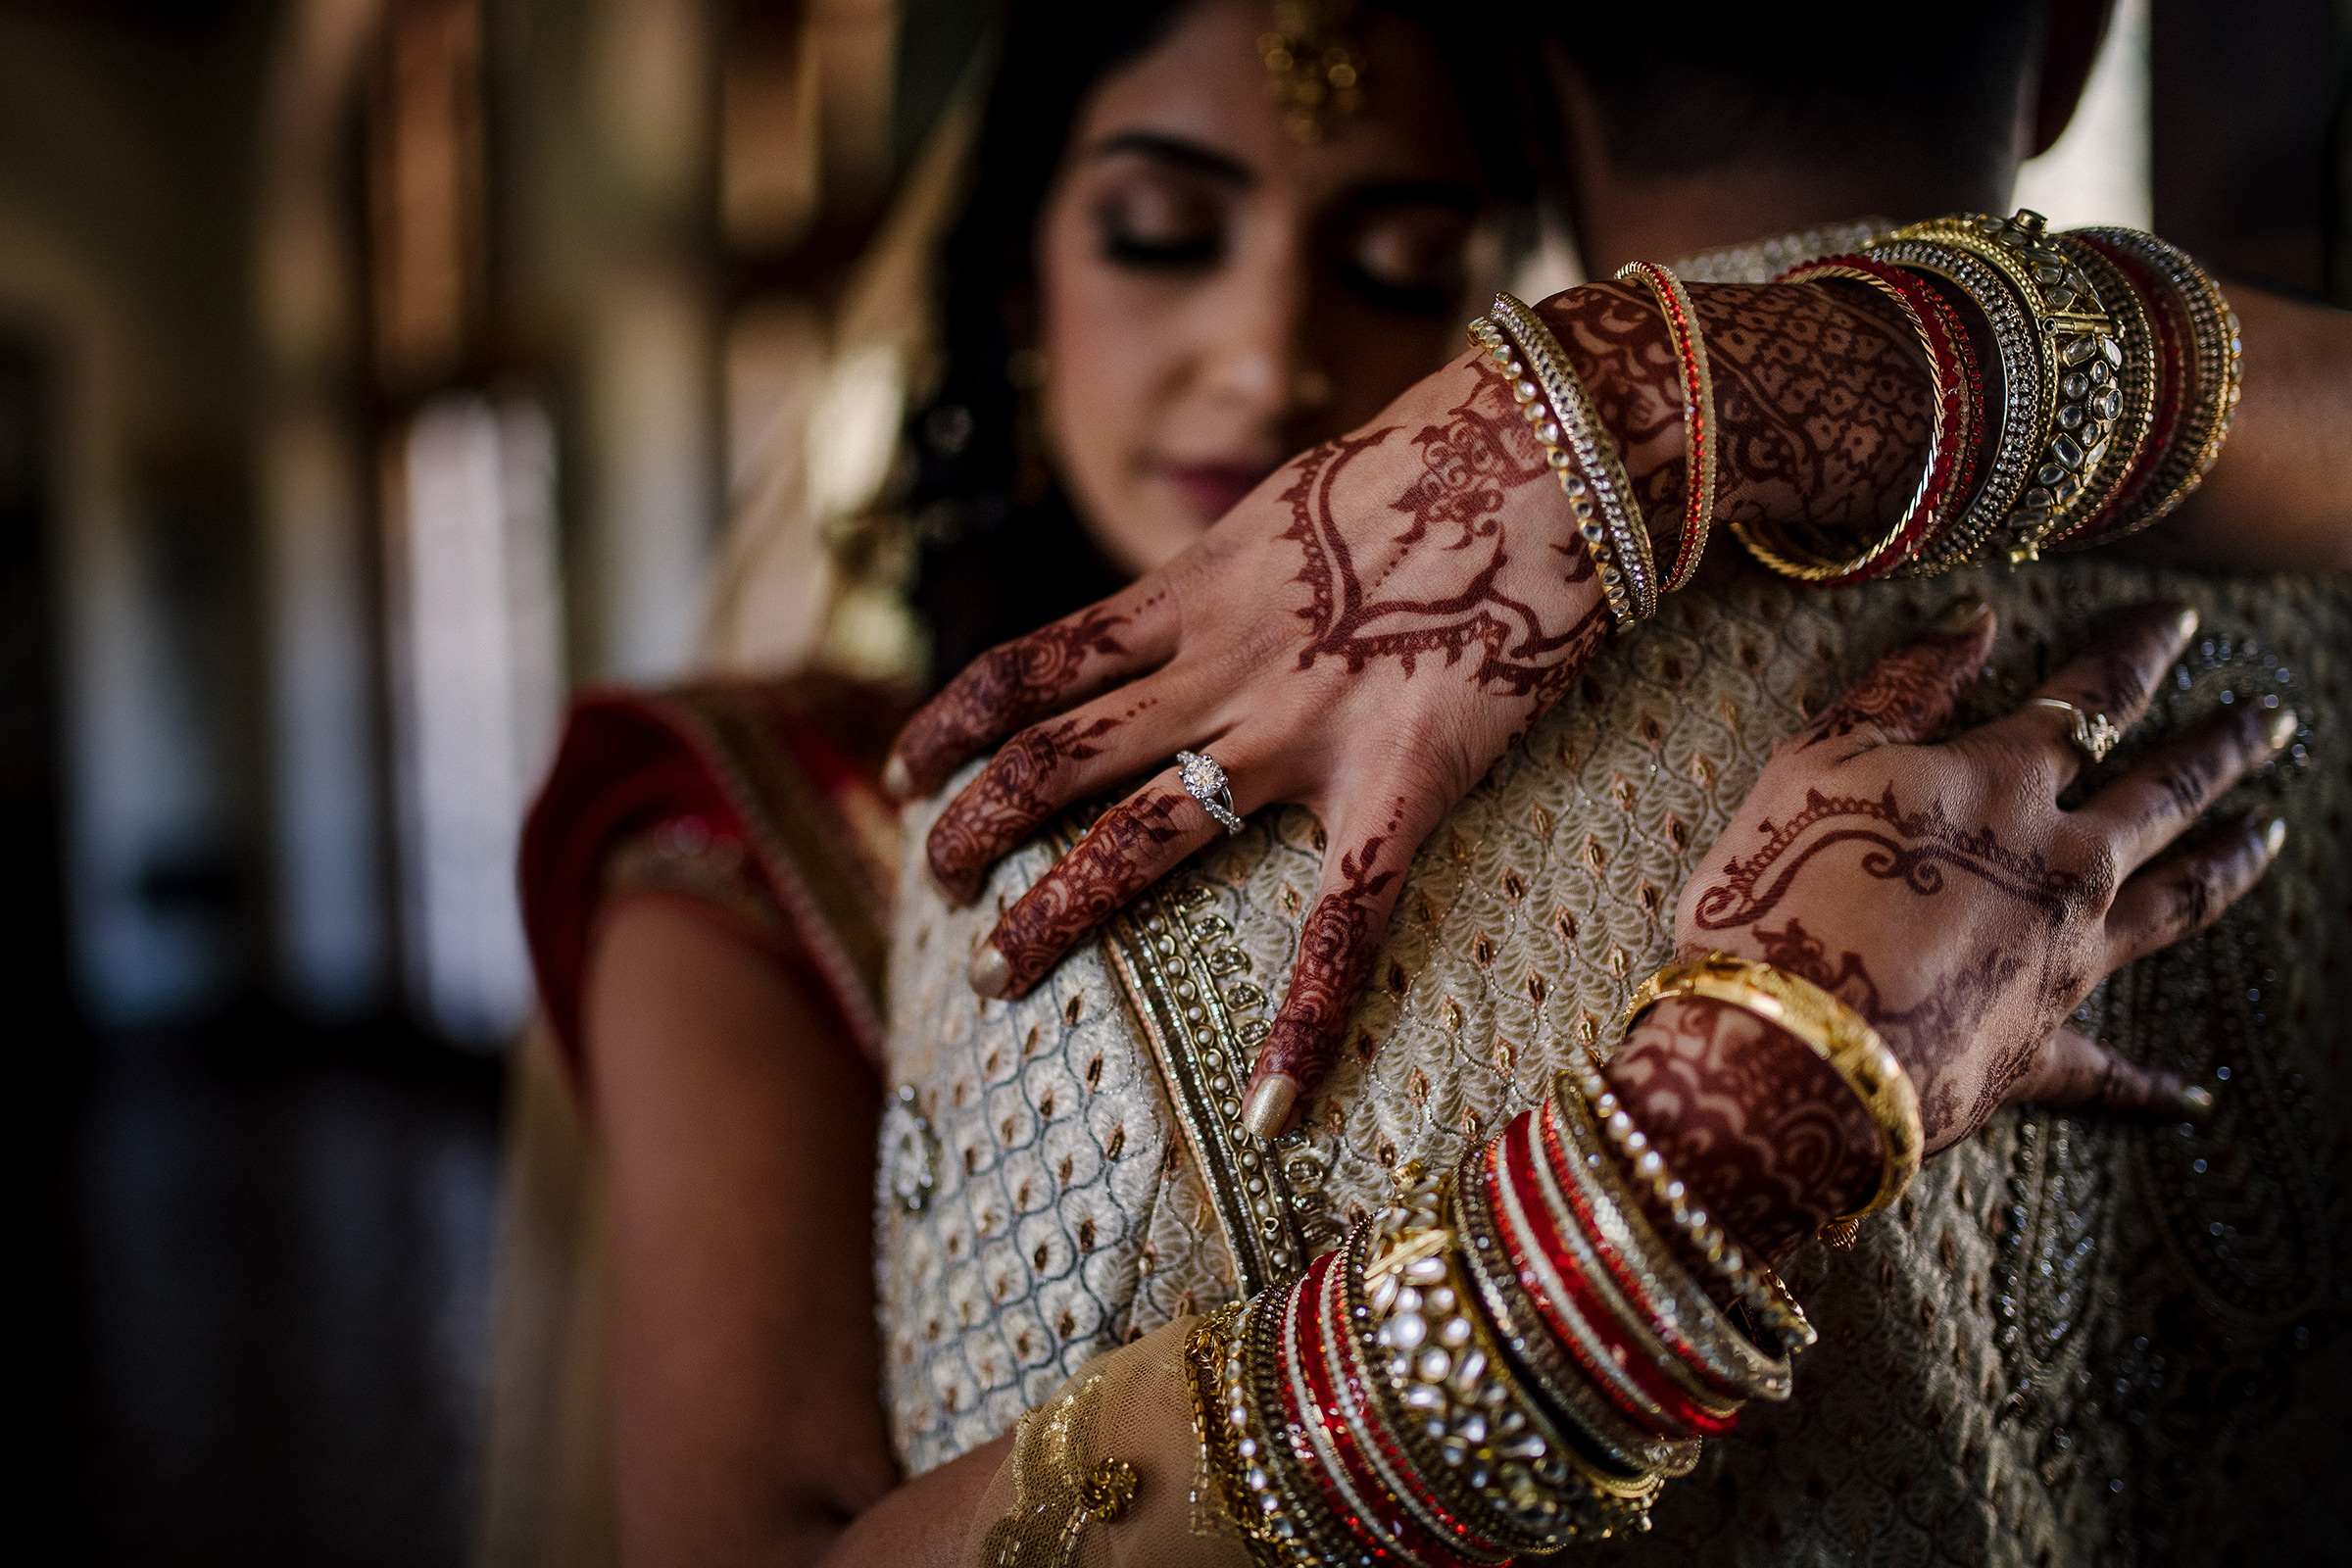 Bride with henna hands embracing groom - photo by Matei Horvath Photography